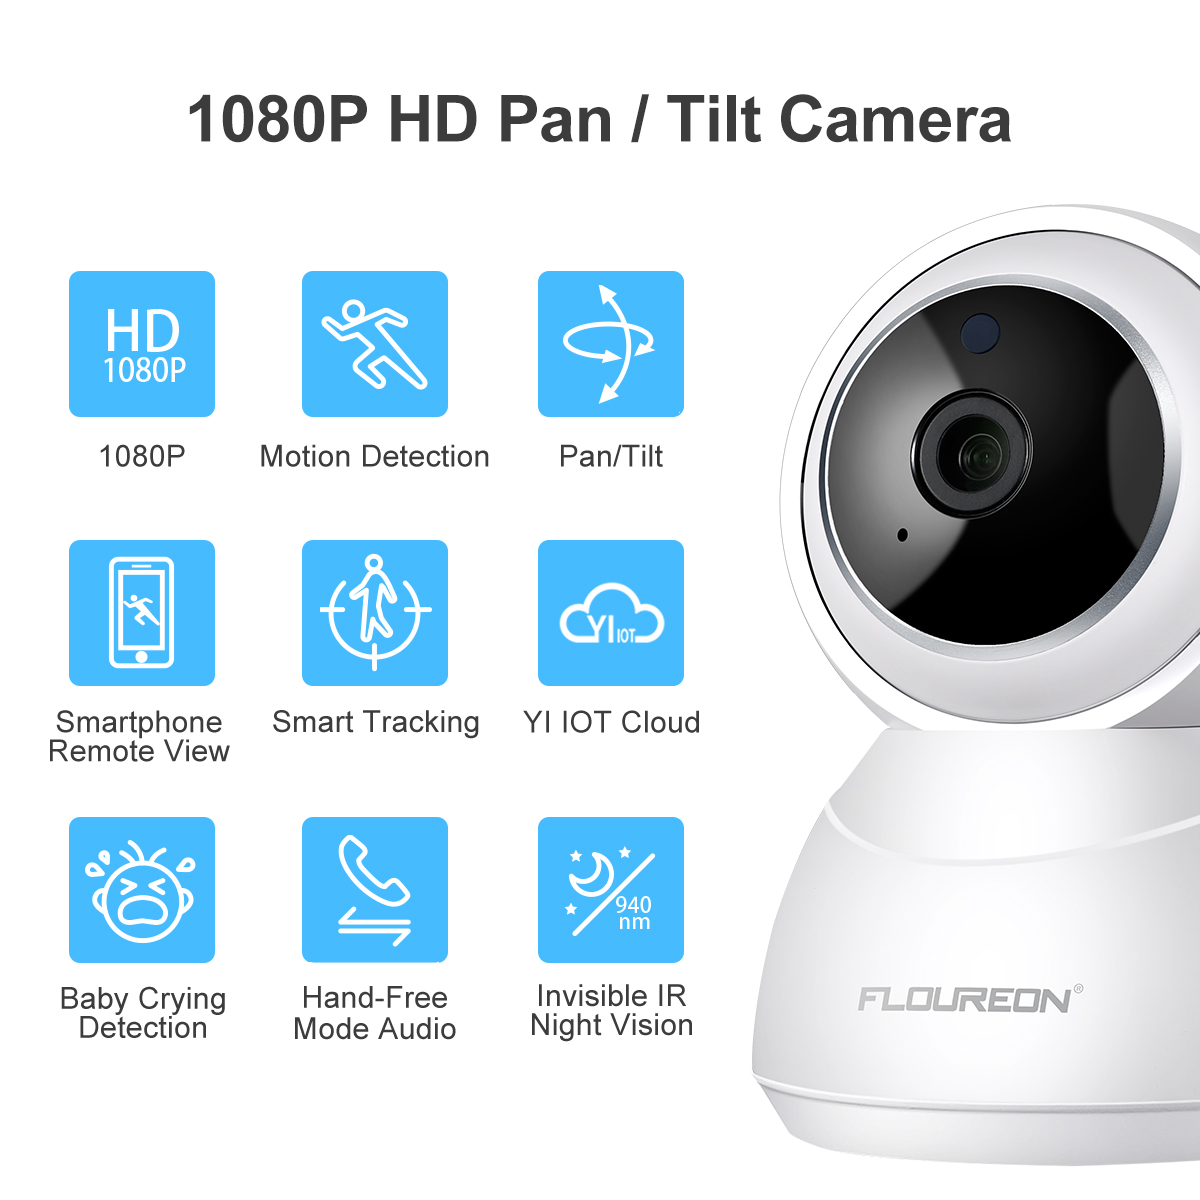 Details about 4X Full HD 1080P YI IOT Cloud Wireless Wifi IP Camera  Pan/Tilt Zoom Night Vision